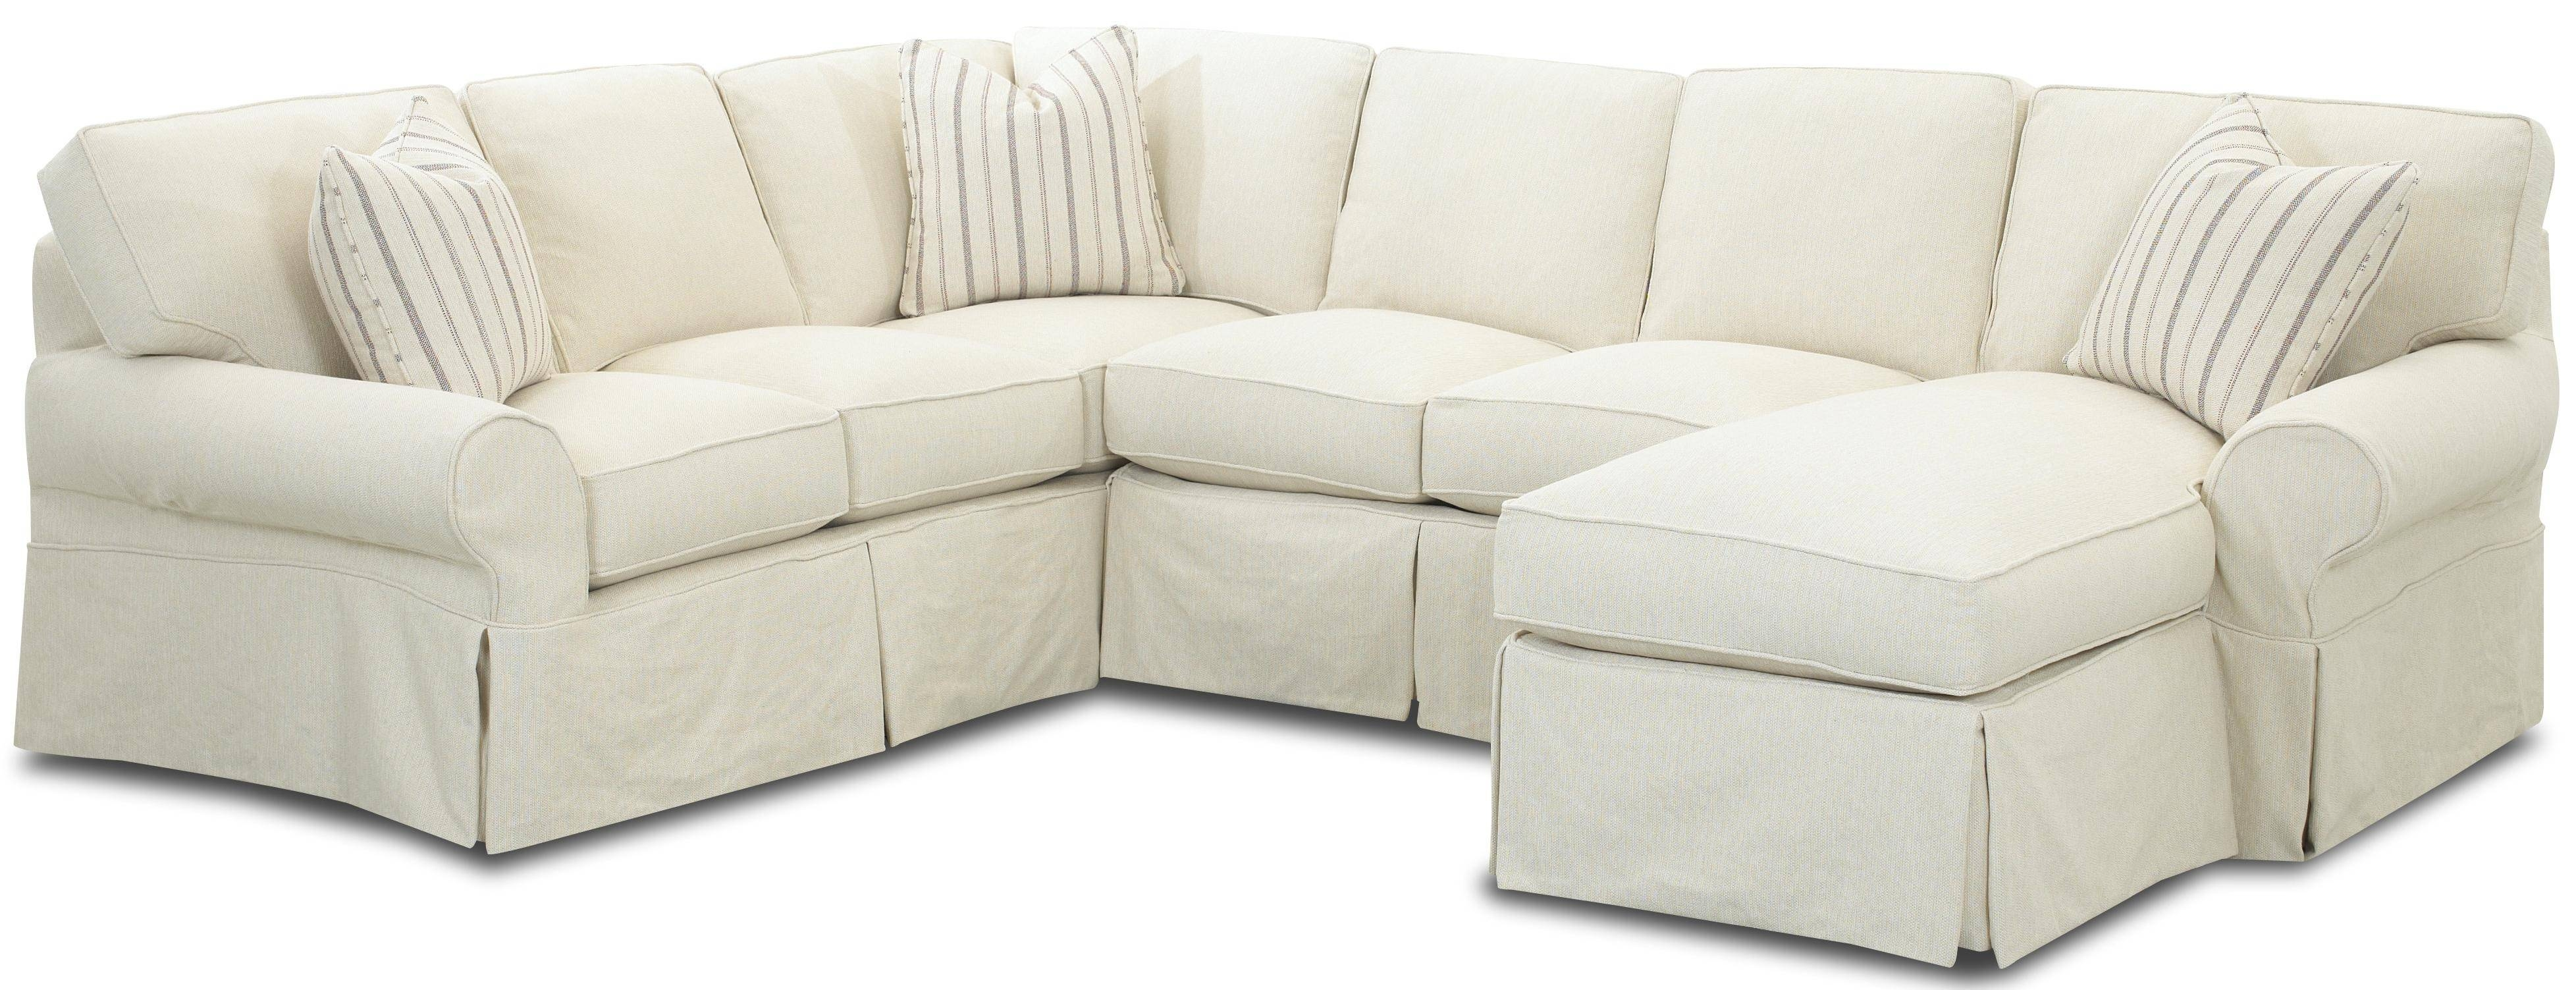 Inspirations: Interesting Furniture Sectional Sofa Slipcovers For within Slipcovers Sofas (Image 16 of 30)